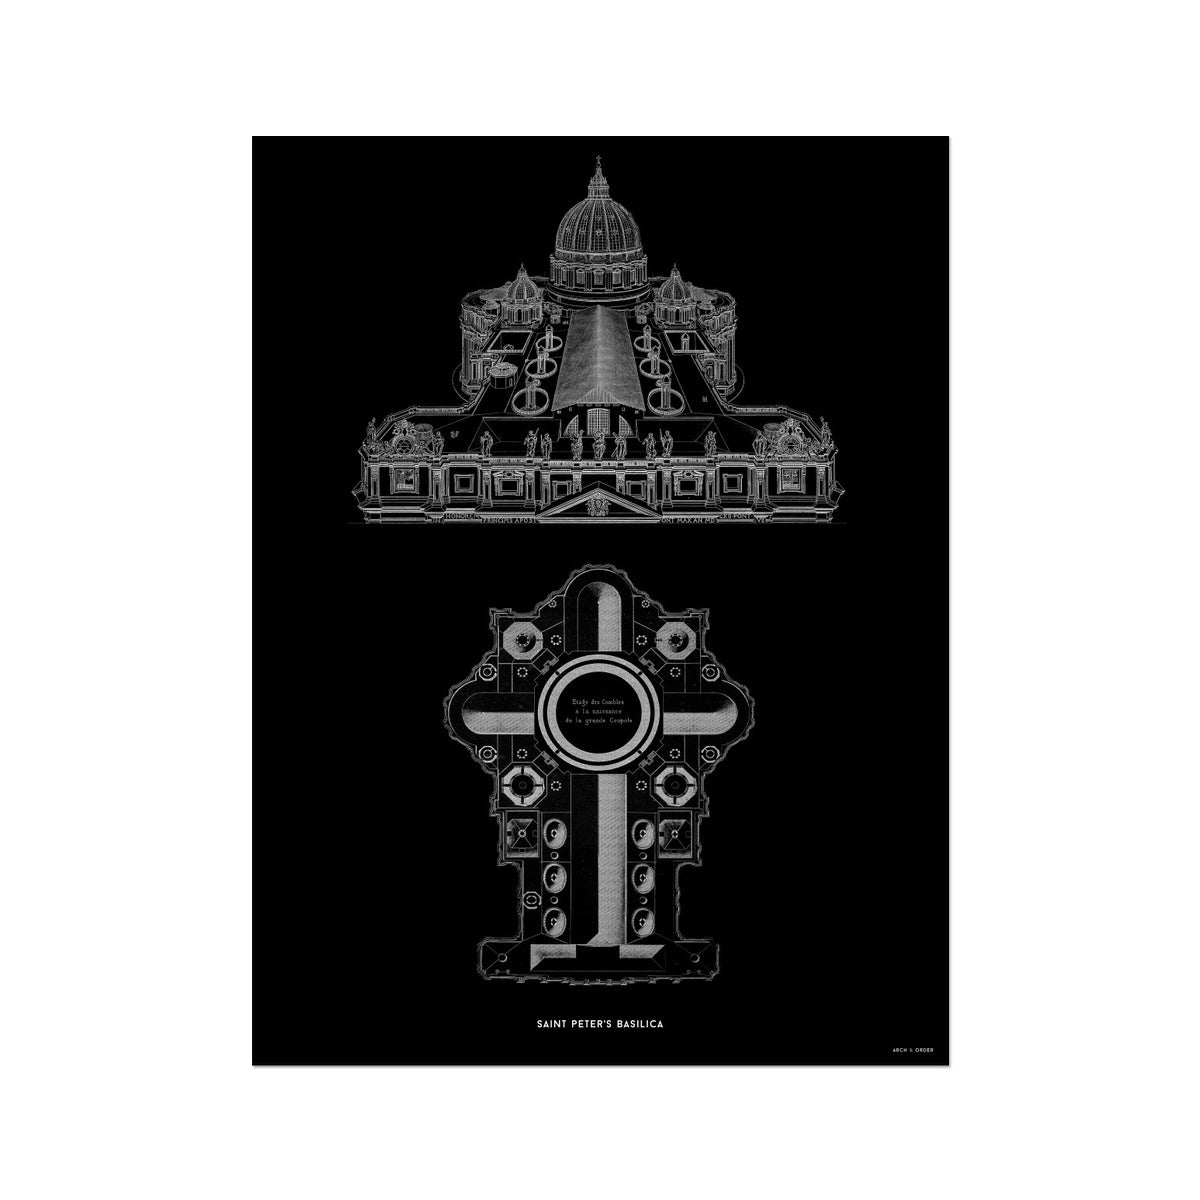 Saint Peter's Basilica - Elevated View - Black -  Etching Paper Print